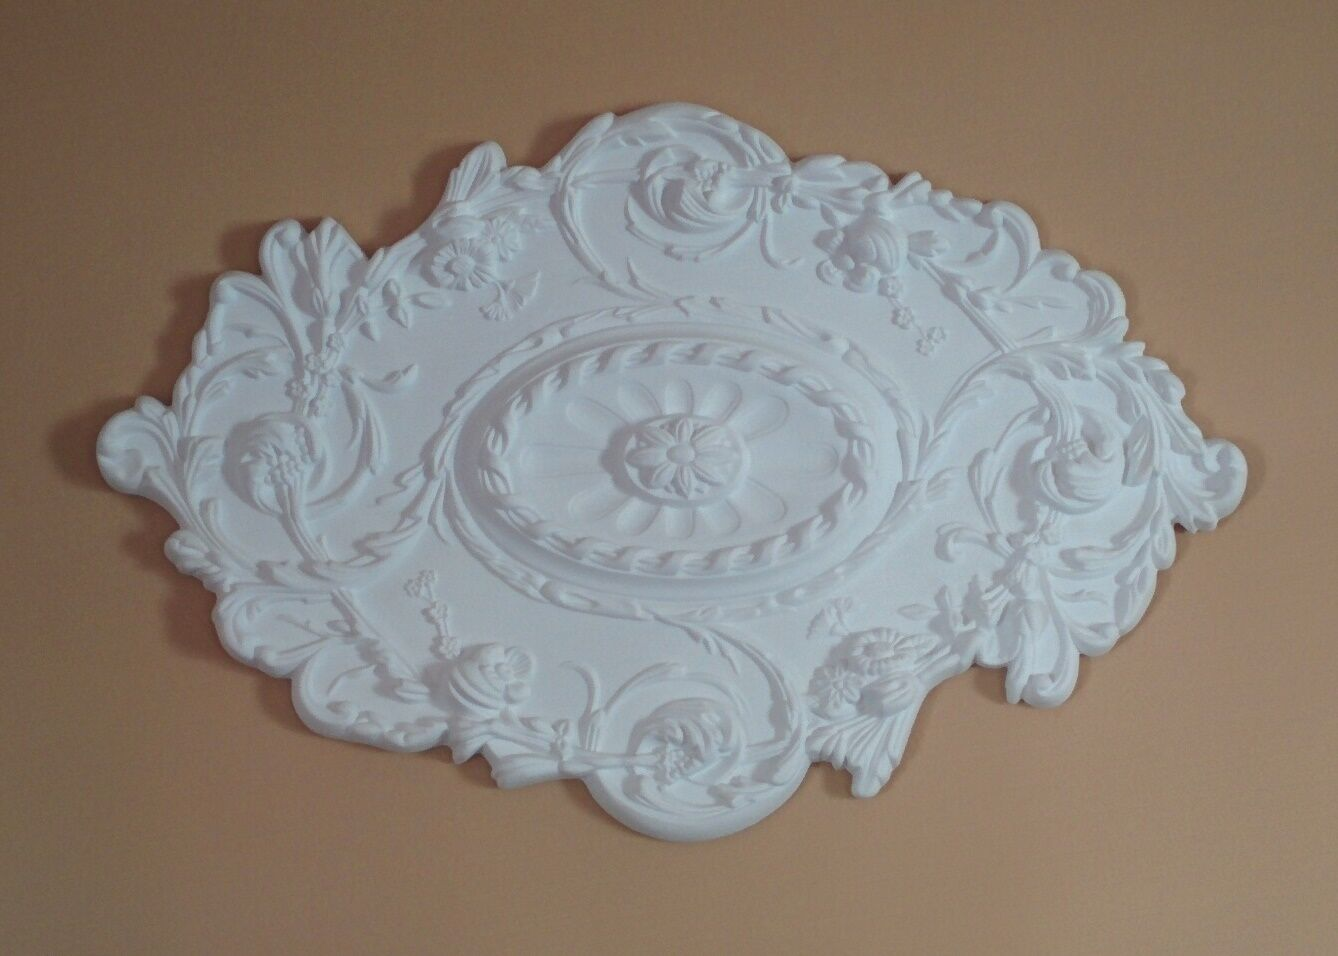 Ceiling Medallion Oval 30.5 x 20 Inch White Polyurethane large for Light fixture